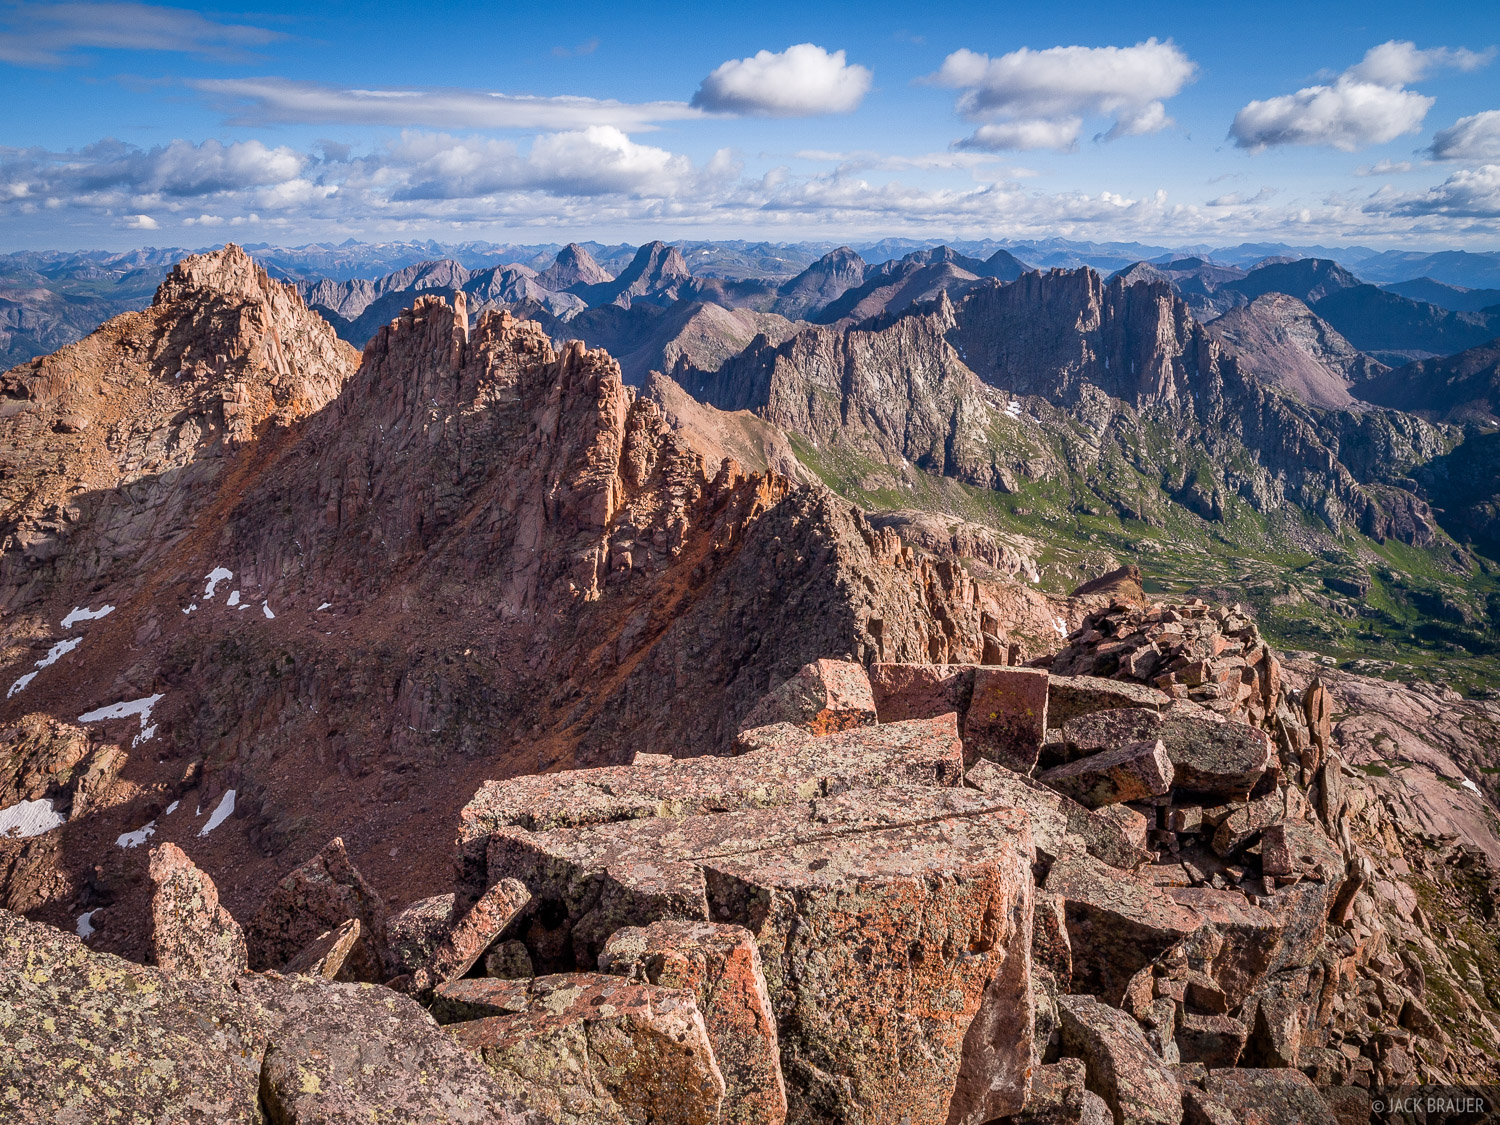 Colorado, Needle Mountains, San Juan Mountains, Weminuche Wilderness, 14er, photo